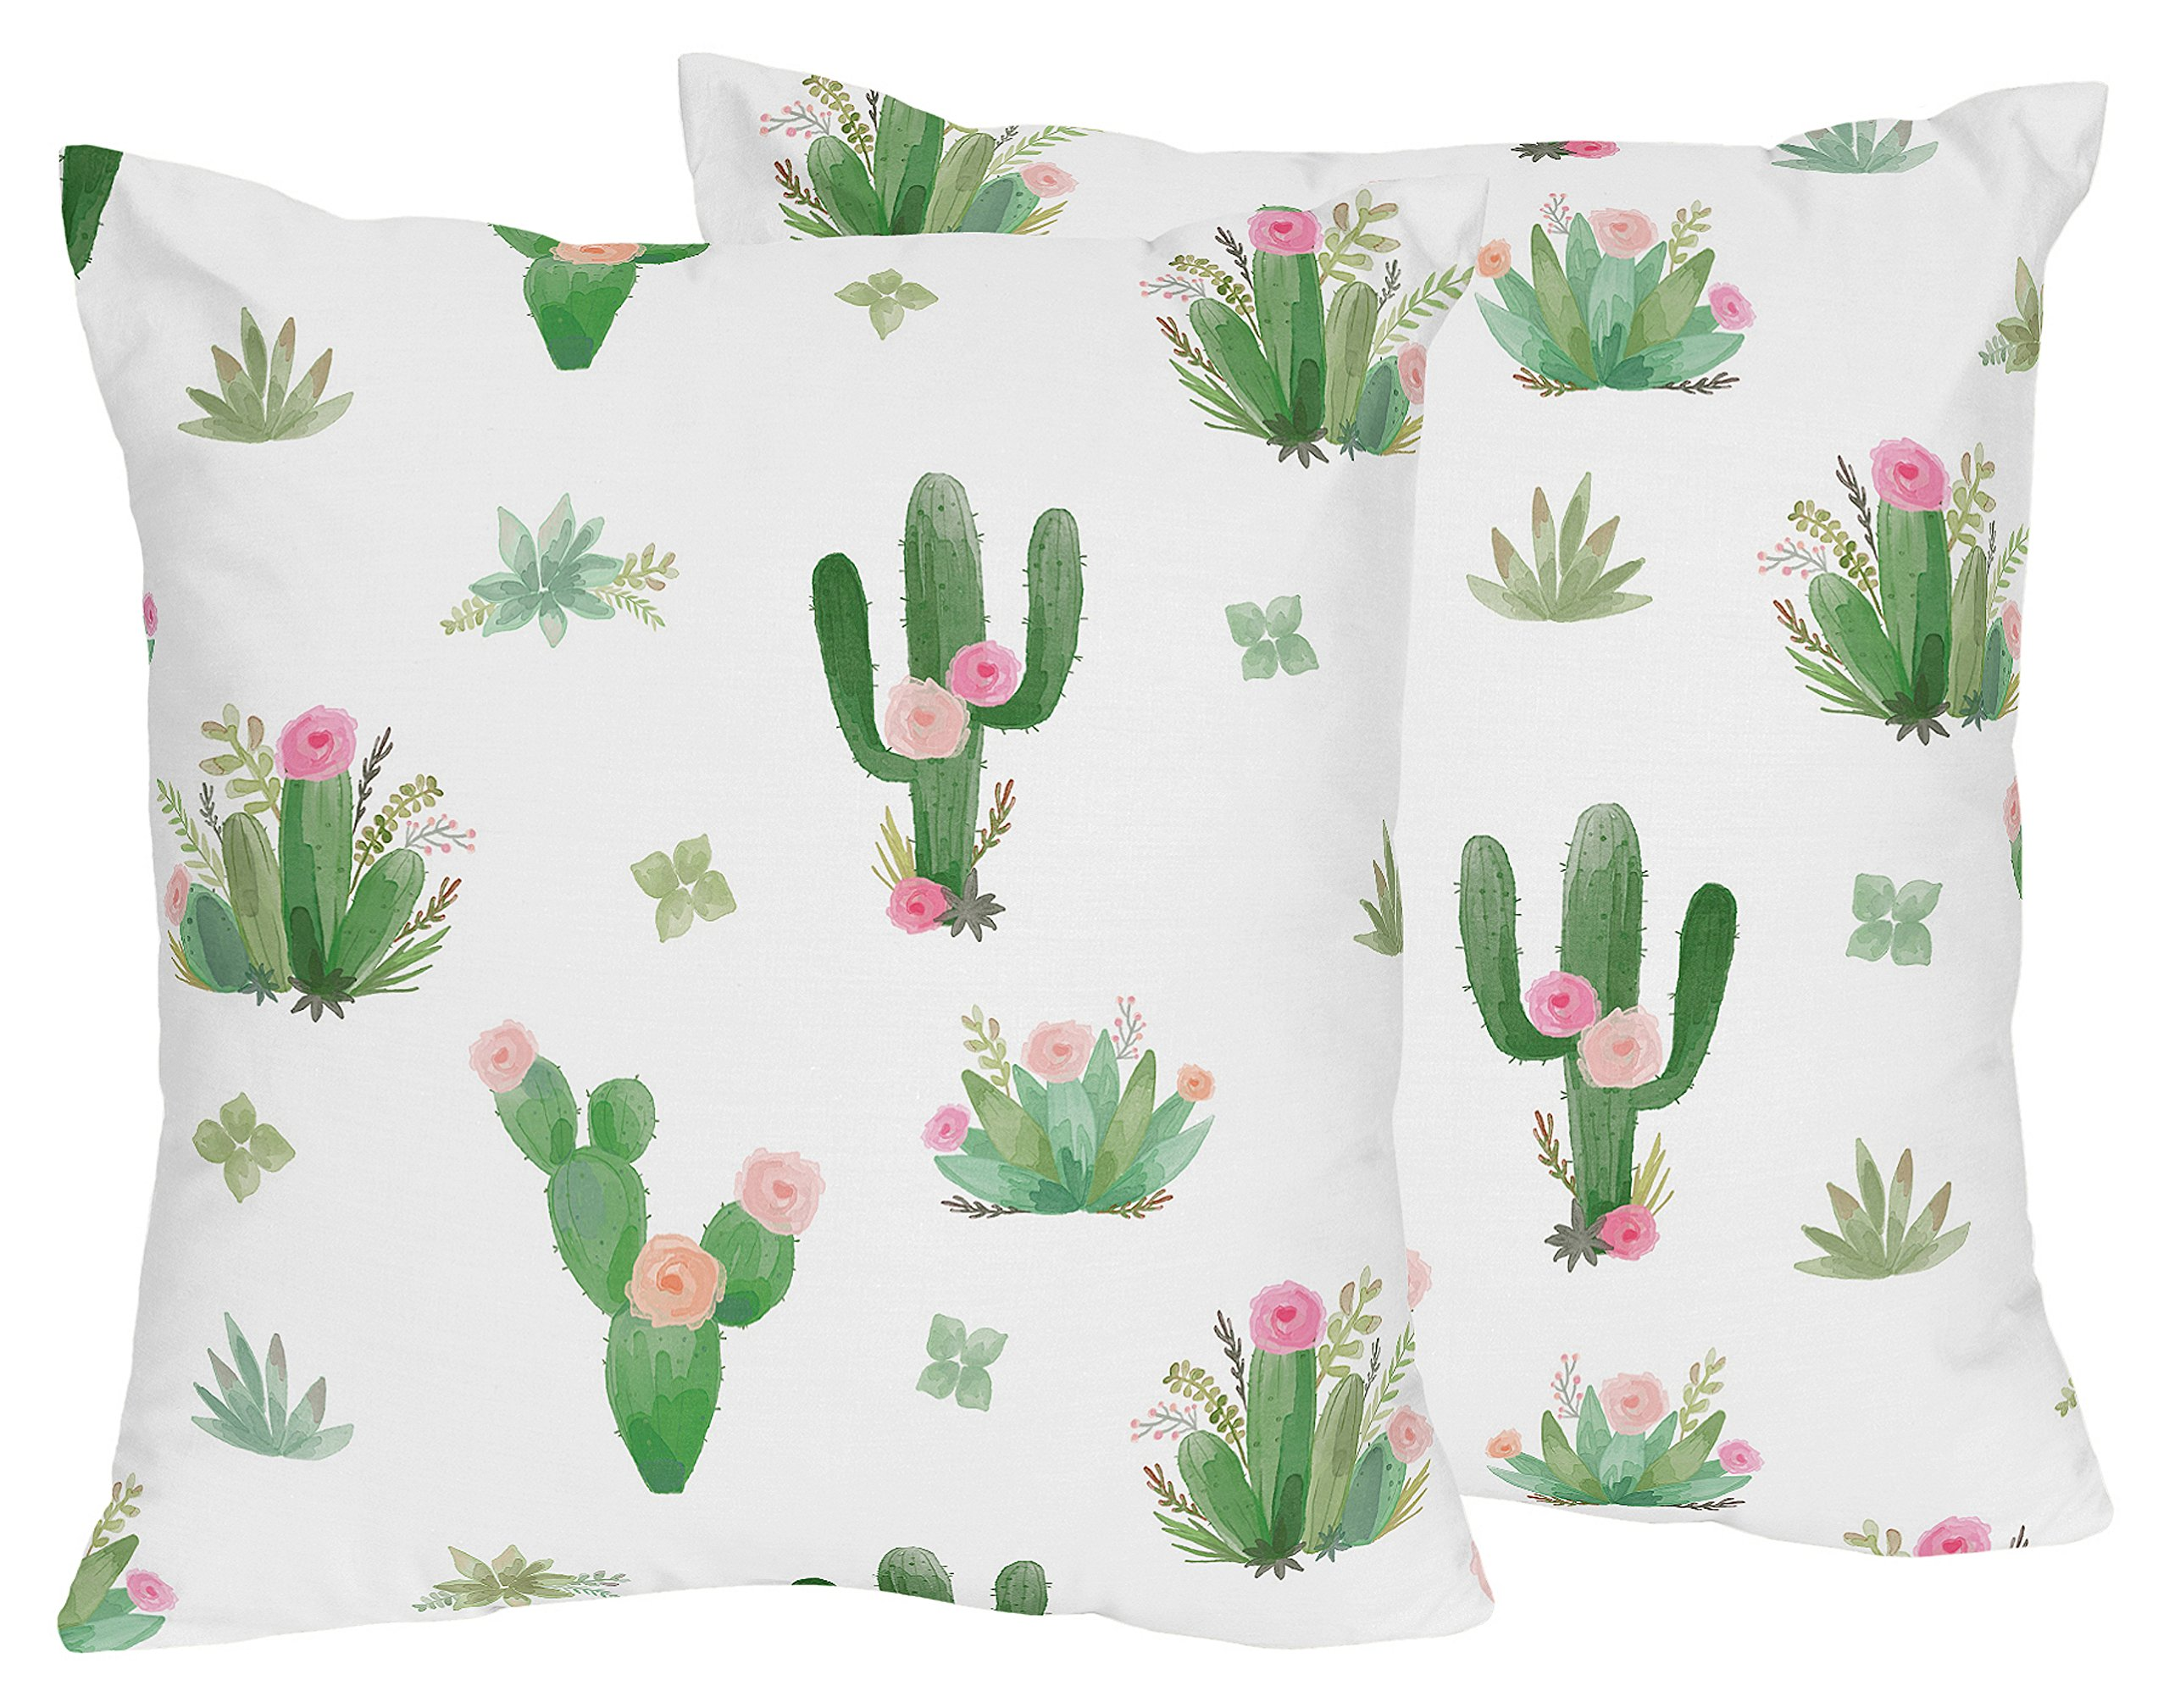 Sweet Jojo Designs Pink and Green Boho Watercolor Decorative Accent Throw Pillows for Cactus Floral Collection - Set of 2